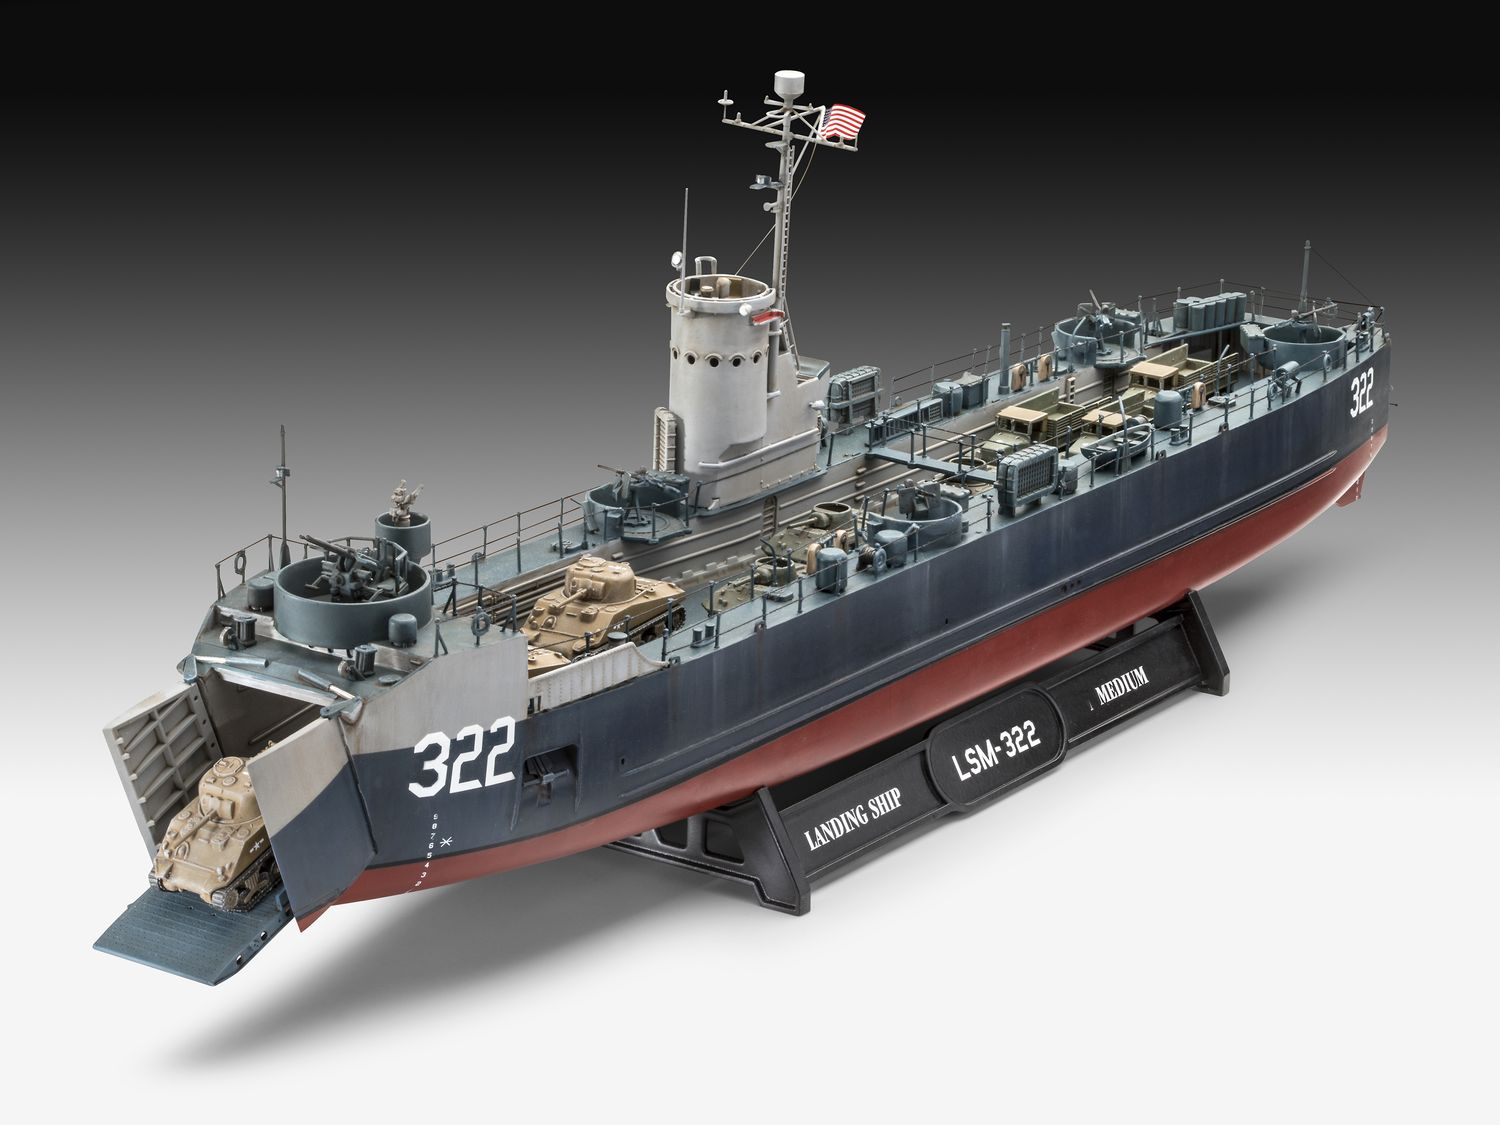 05169-US-Navy-Landing-ship-Medium-Bofors-40mm-gun Revell-Neuheiten 2020